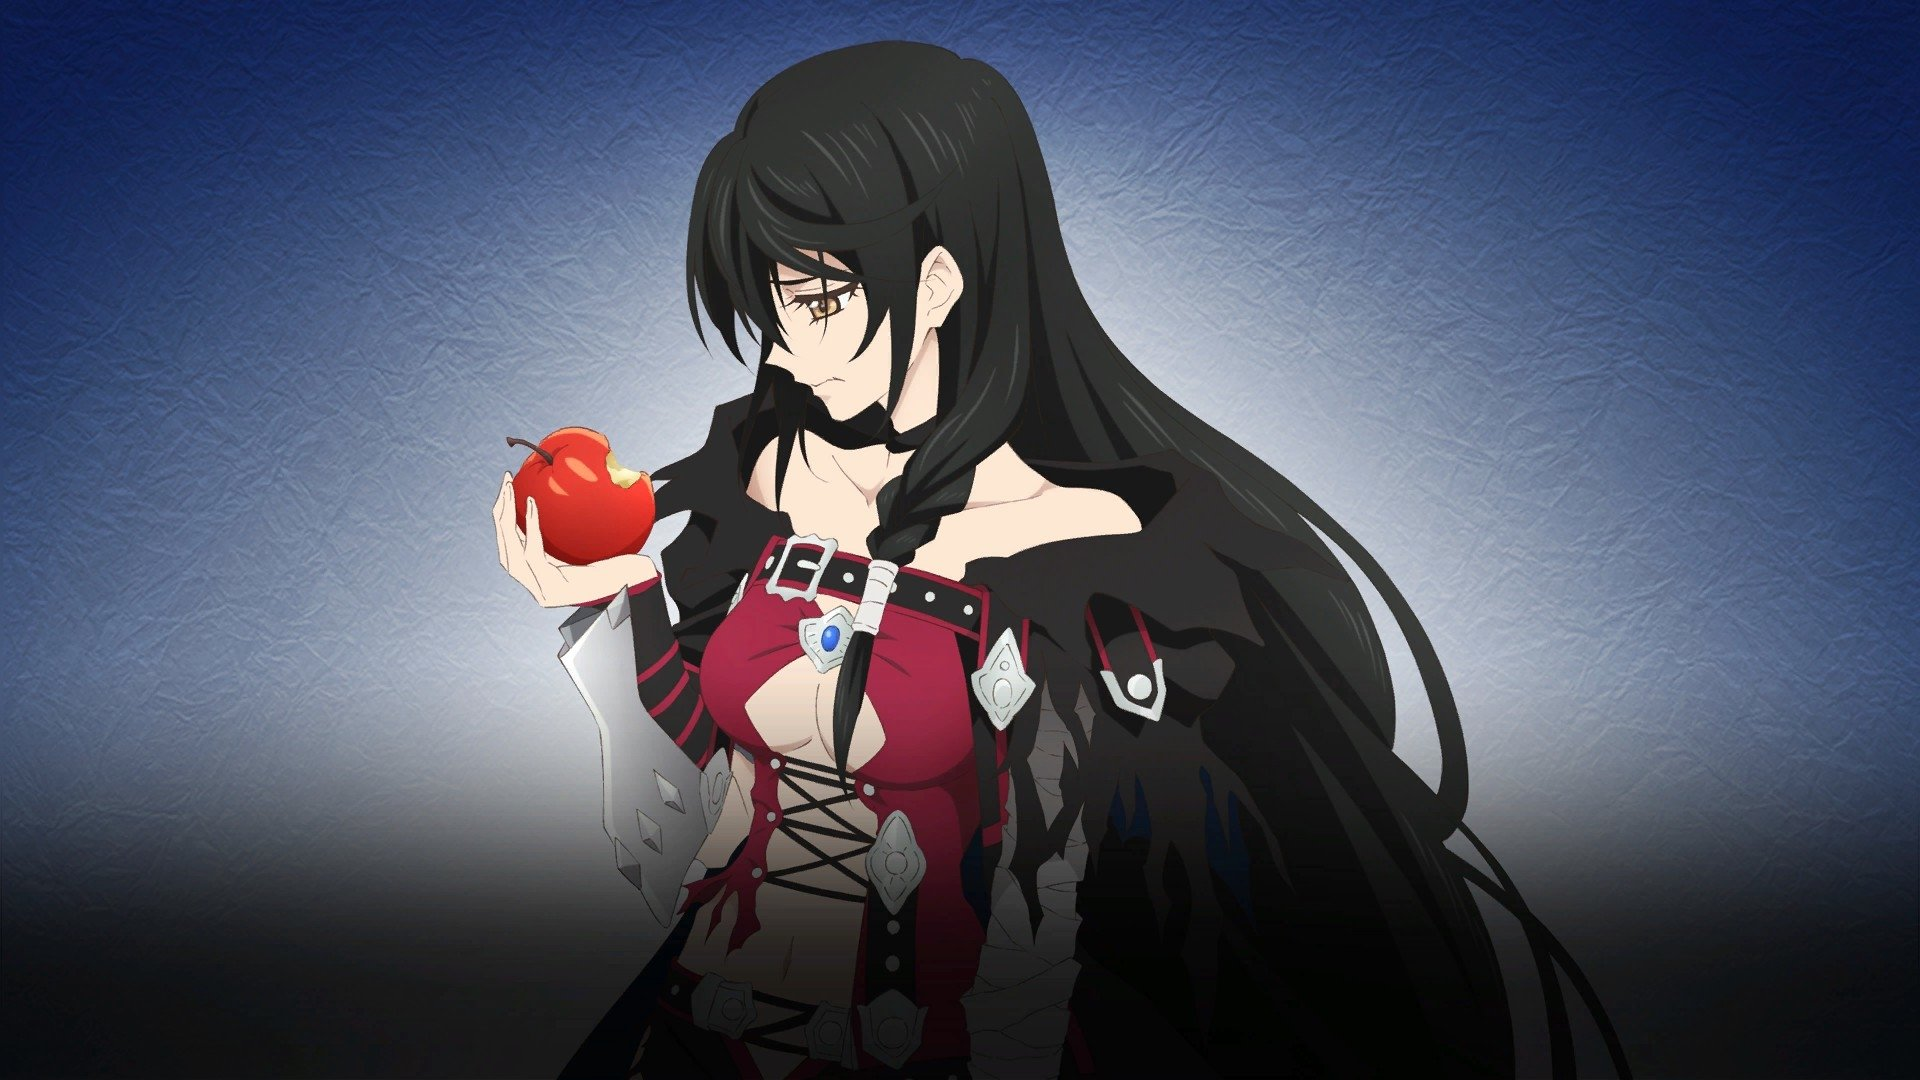 40 Tales Of Berseria Hd Wallpapers Background Images Wallpaper